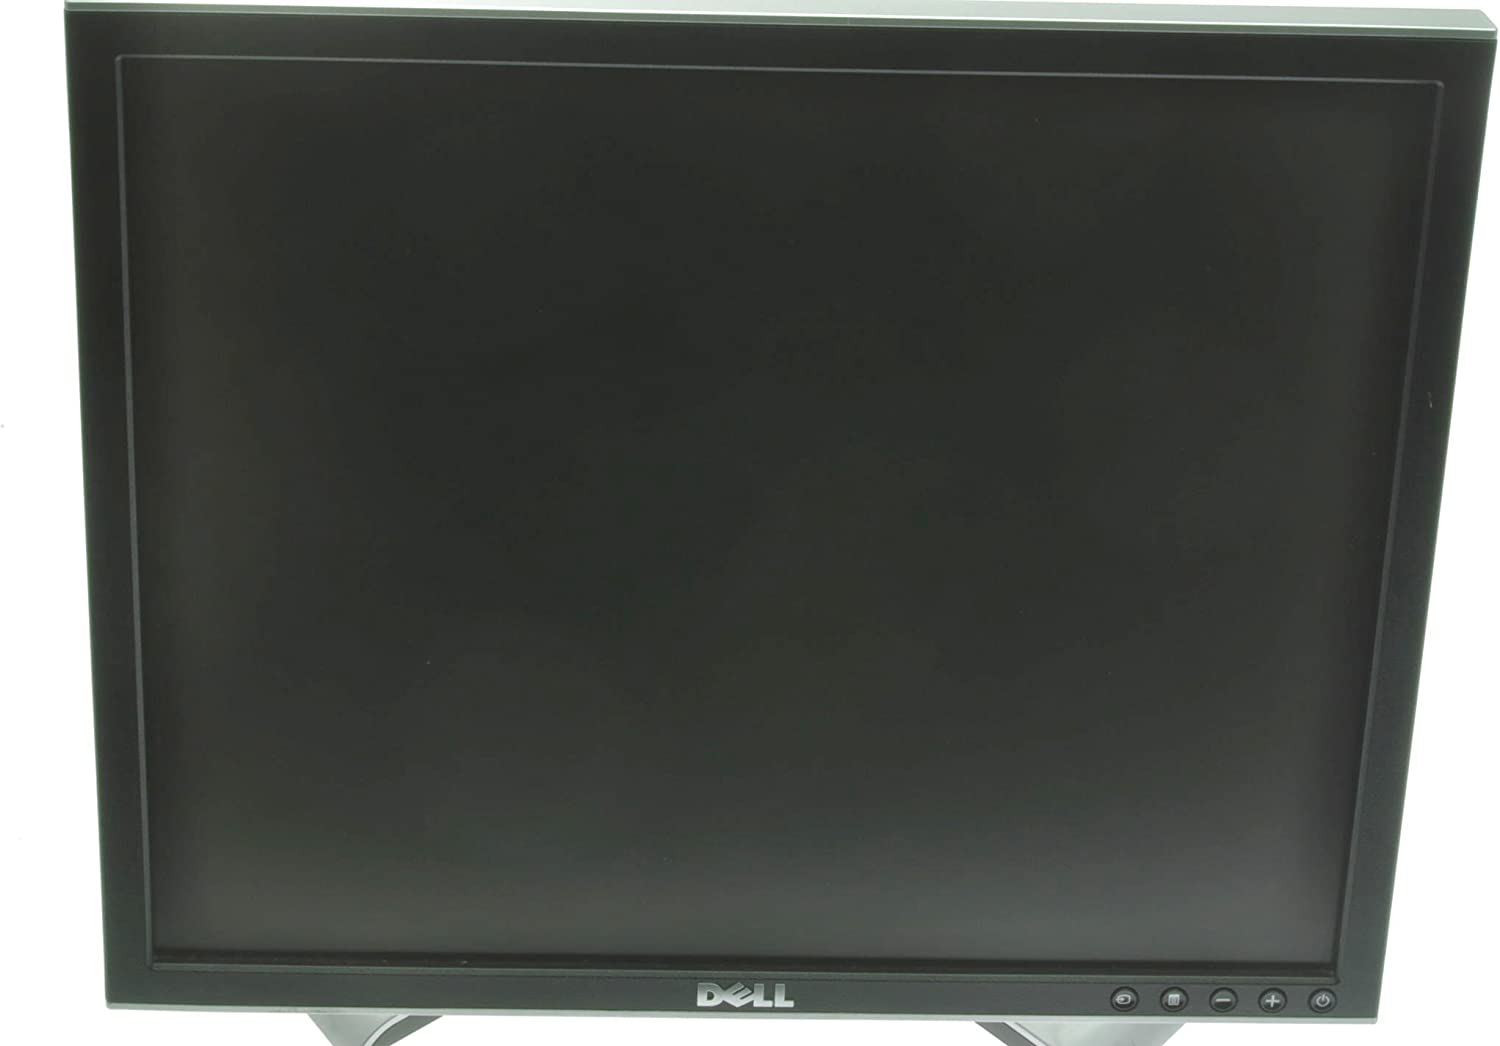 Dell 1907fpt Lcd Monitor